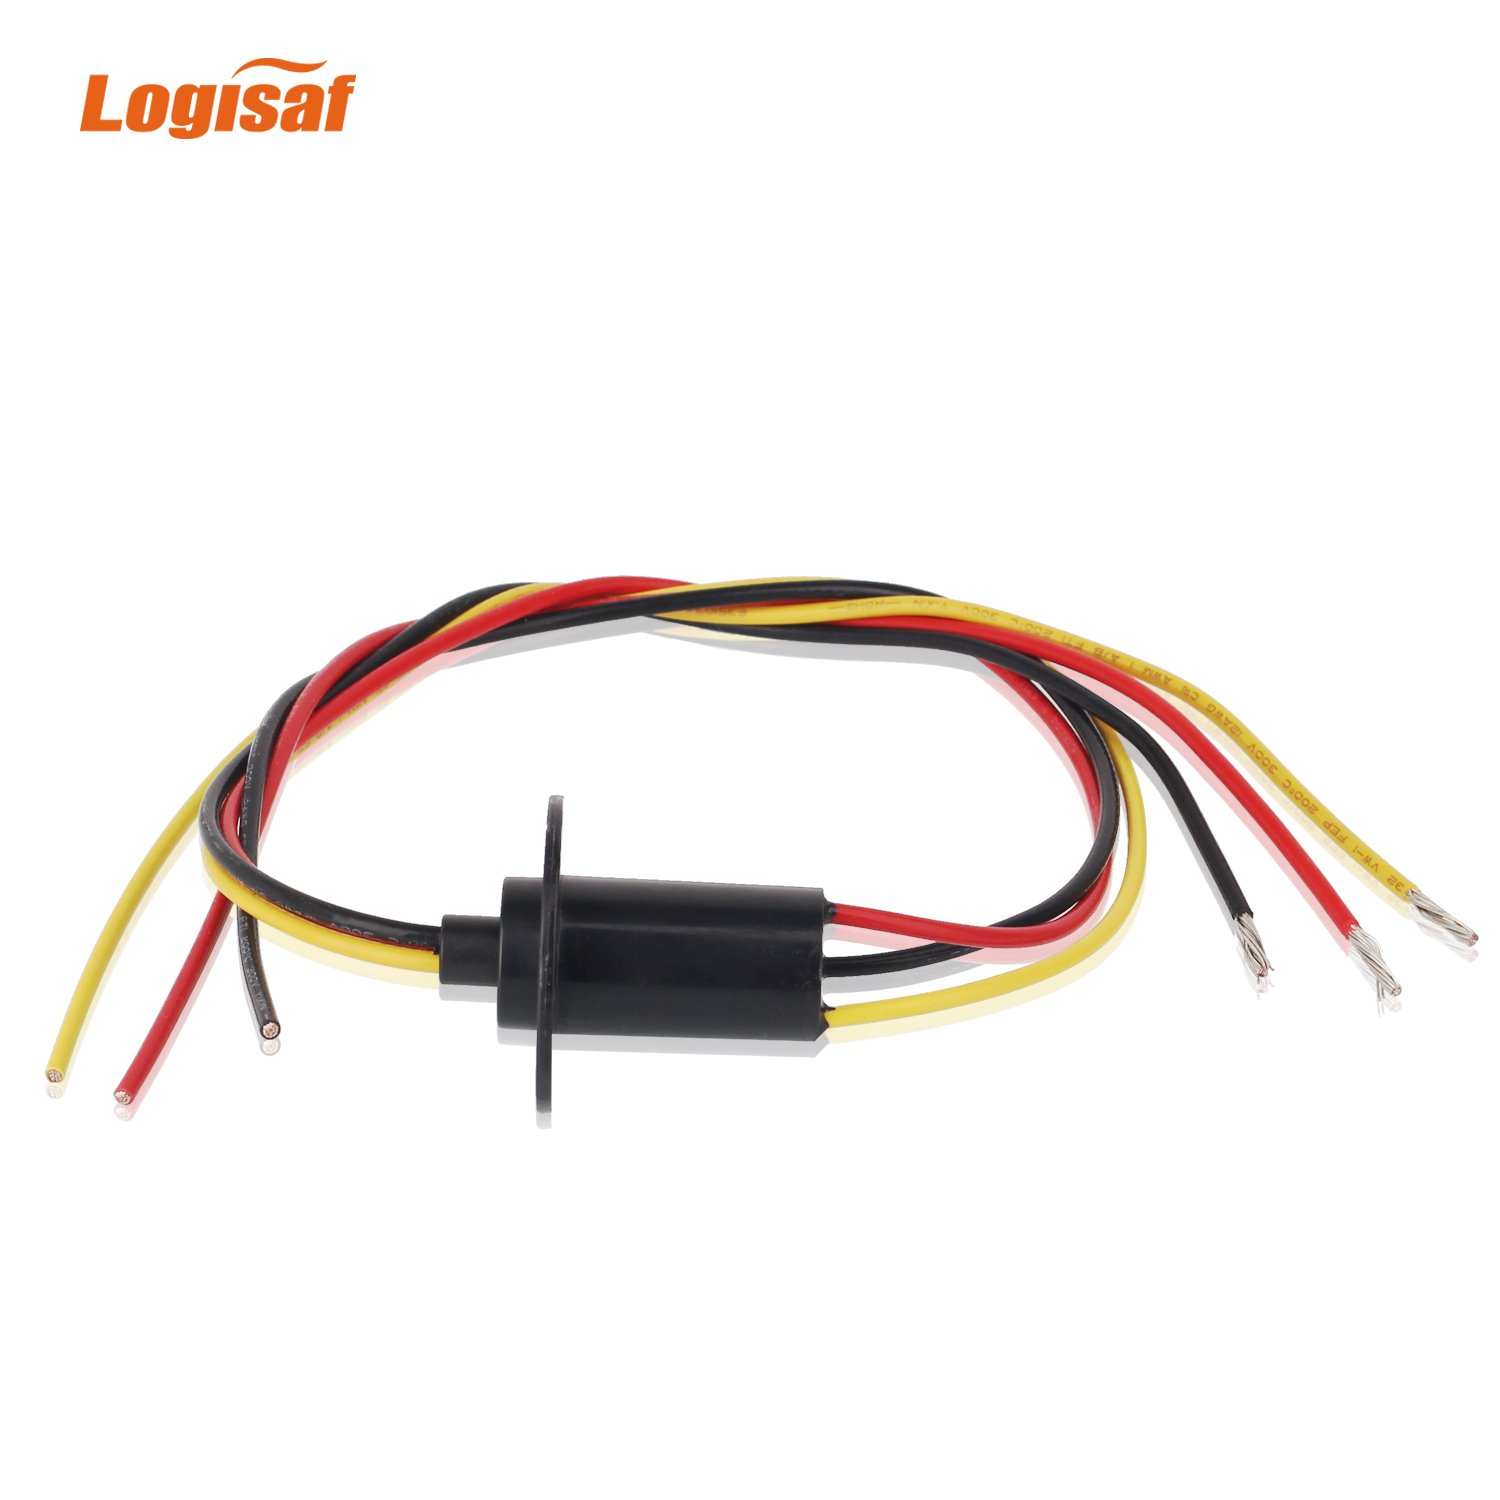 Logisaf 30a 3 Wires 600vdc Vac Wind Generator Slip Ring For Besides How To Wire Breaker Box Also 240 Plug Wiring Turbine